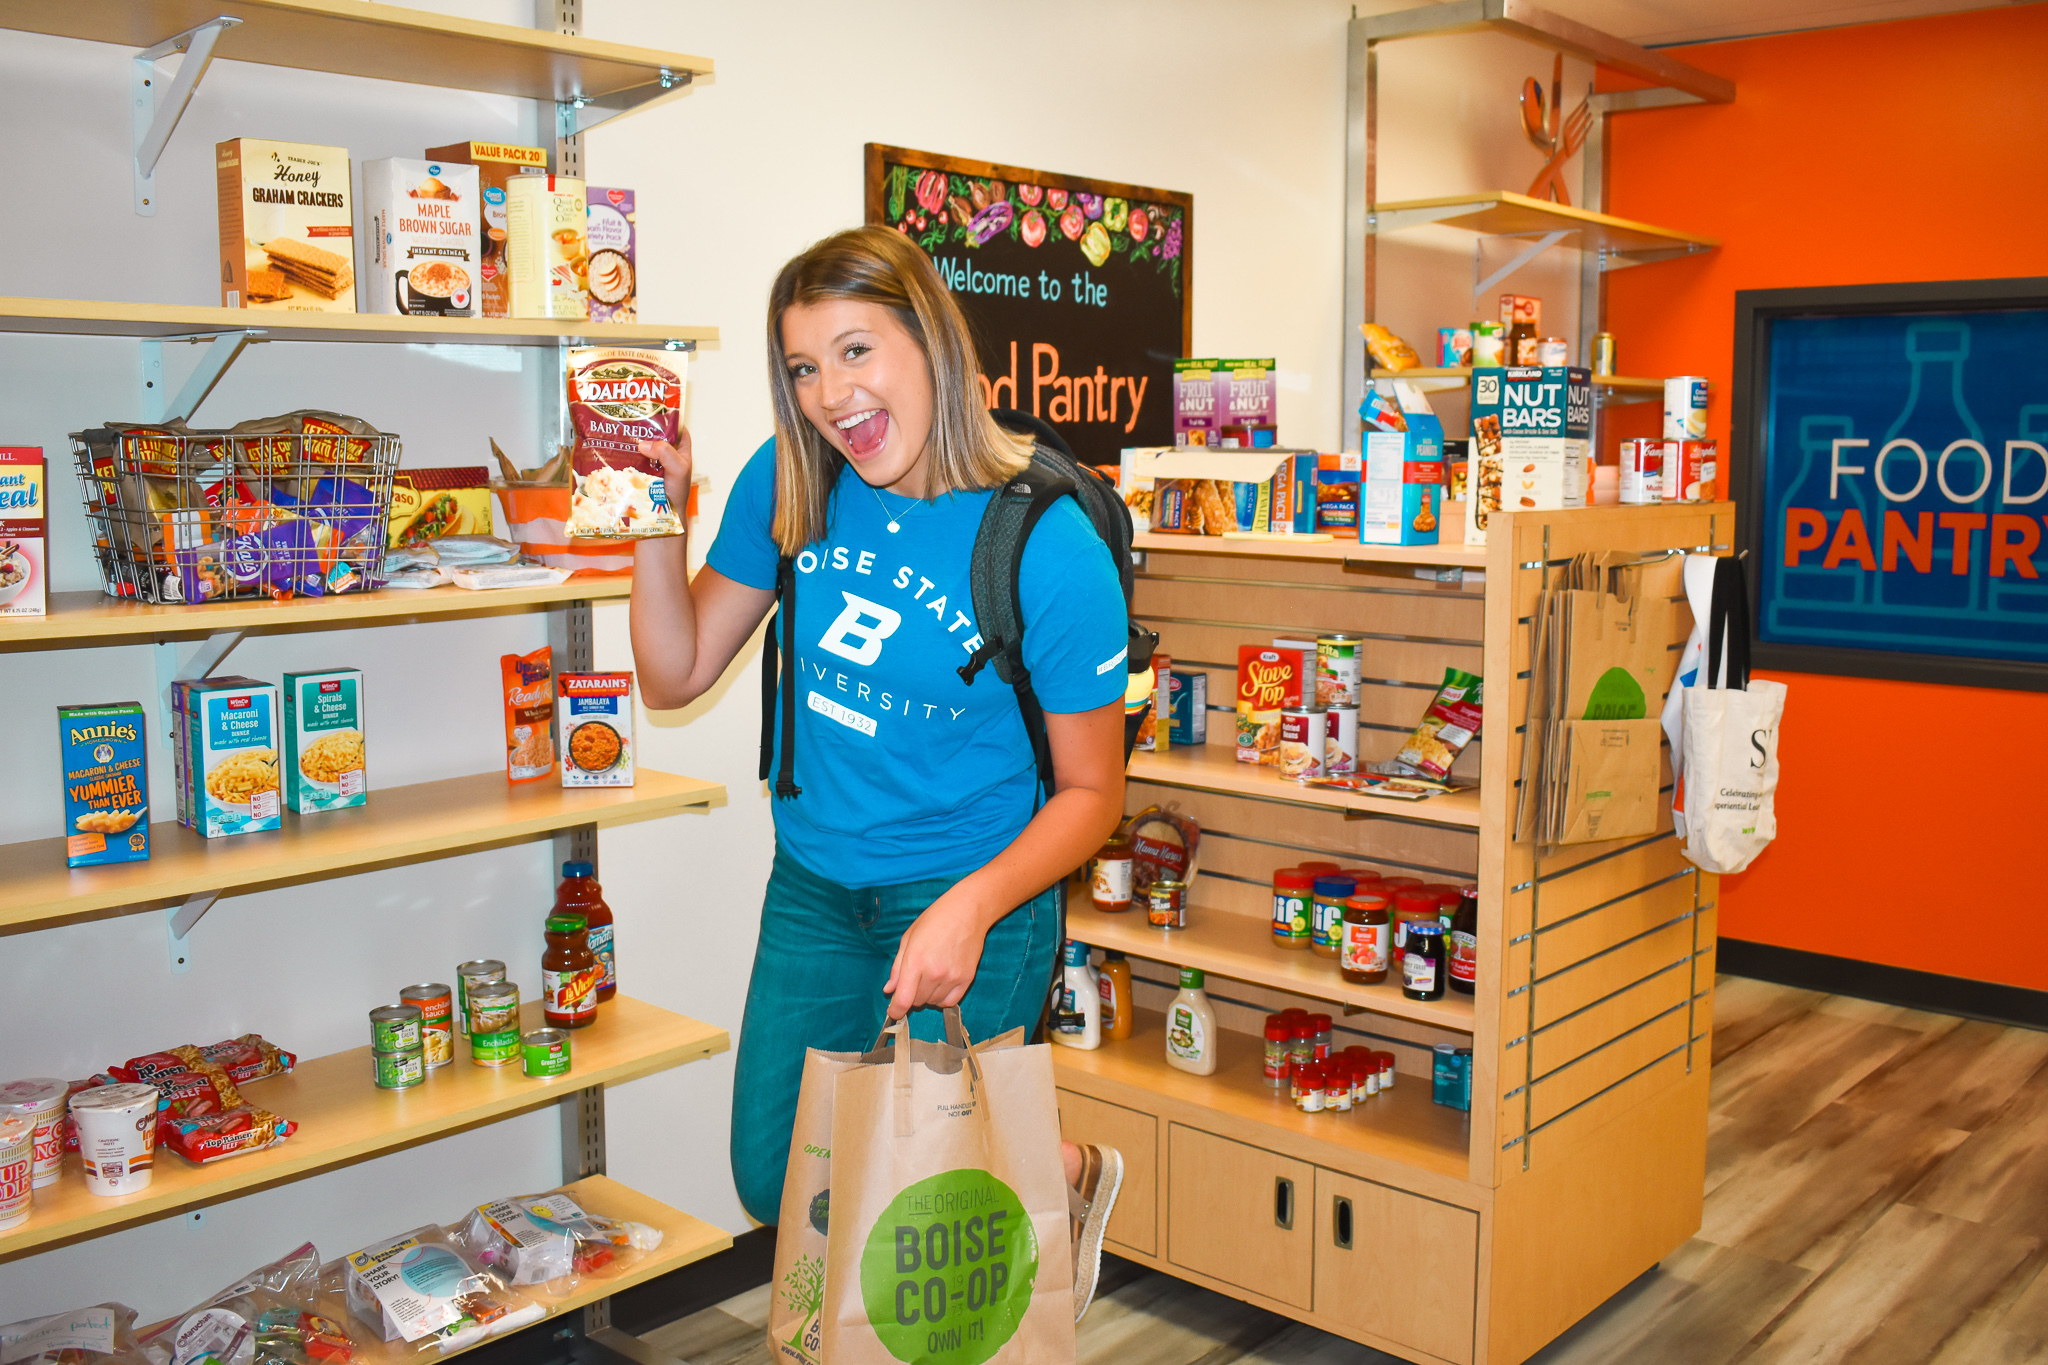 Shopping at the Campus Food Pantry